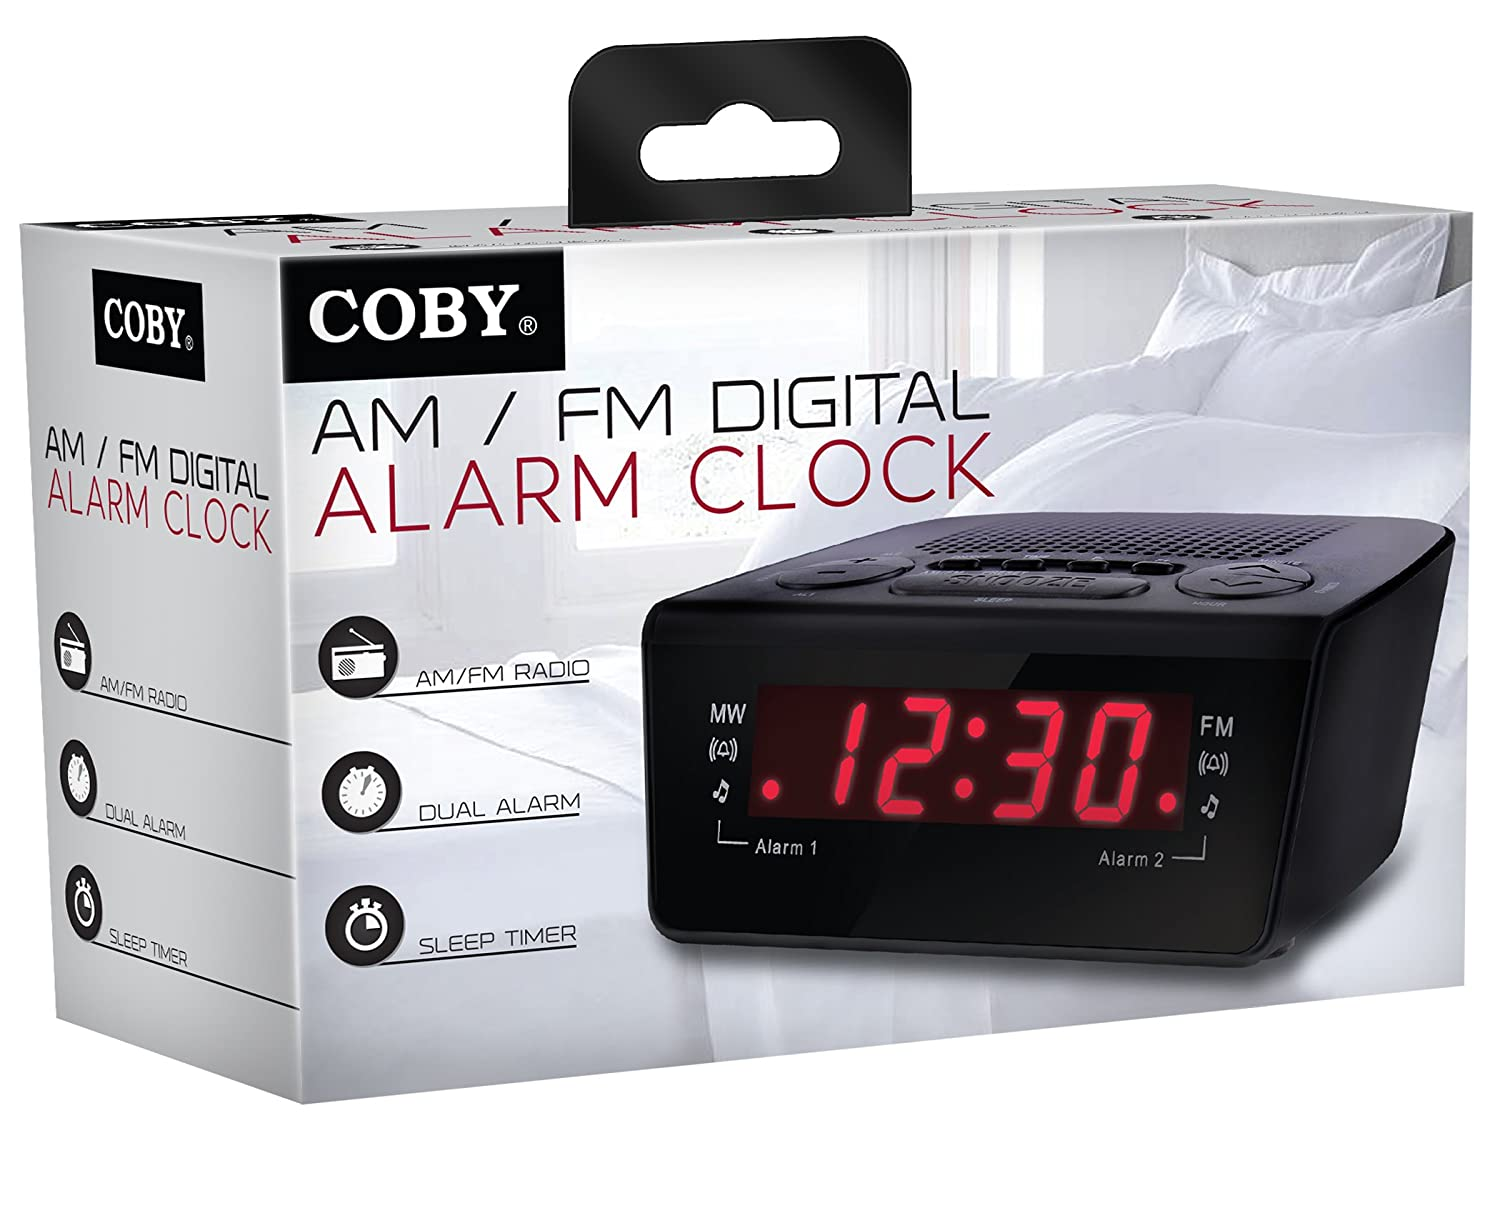 Amazon.com: Coby CBCR-103-BLK Digital Alarm Clock with AM/FM Radio and Dual Alarm (Black): Home Audio & Theater